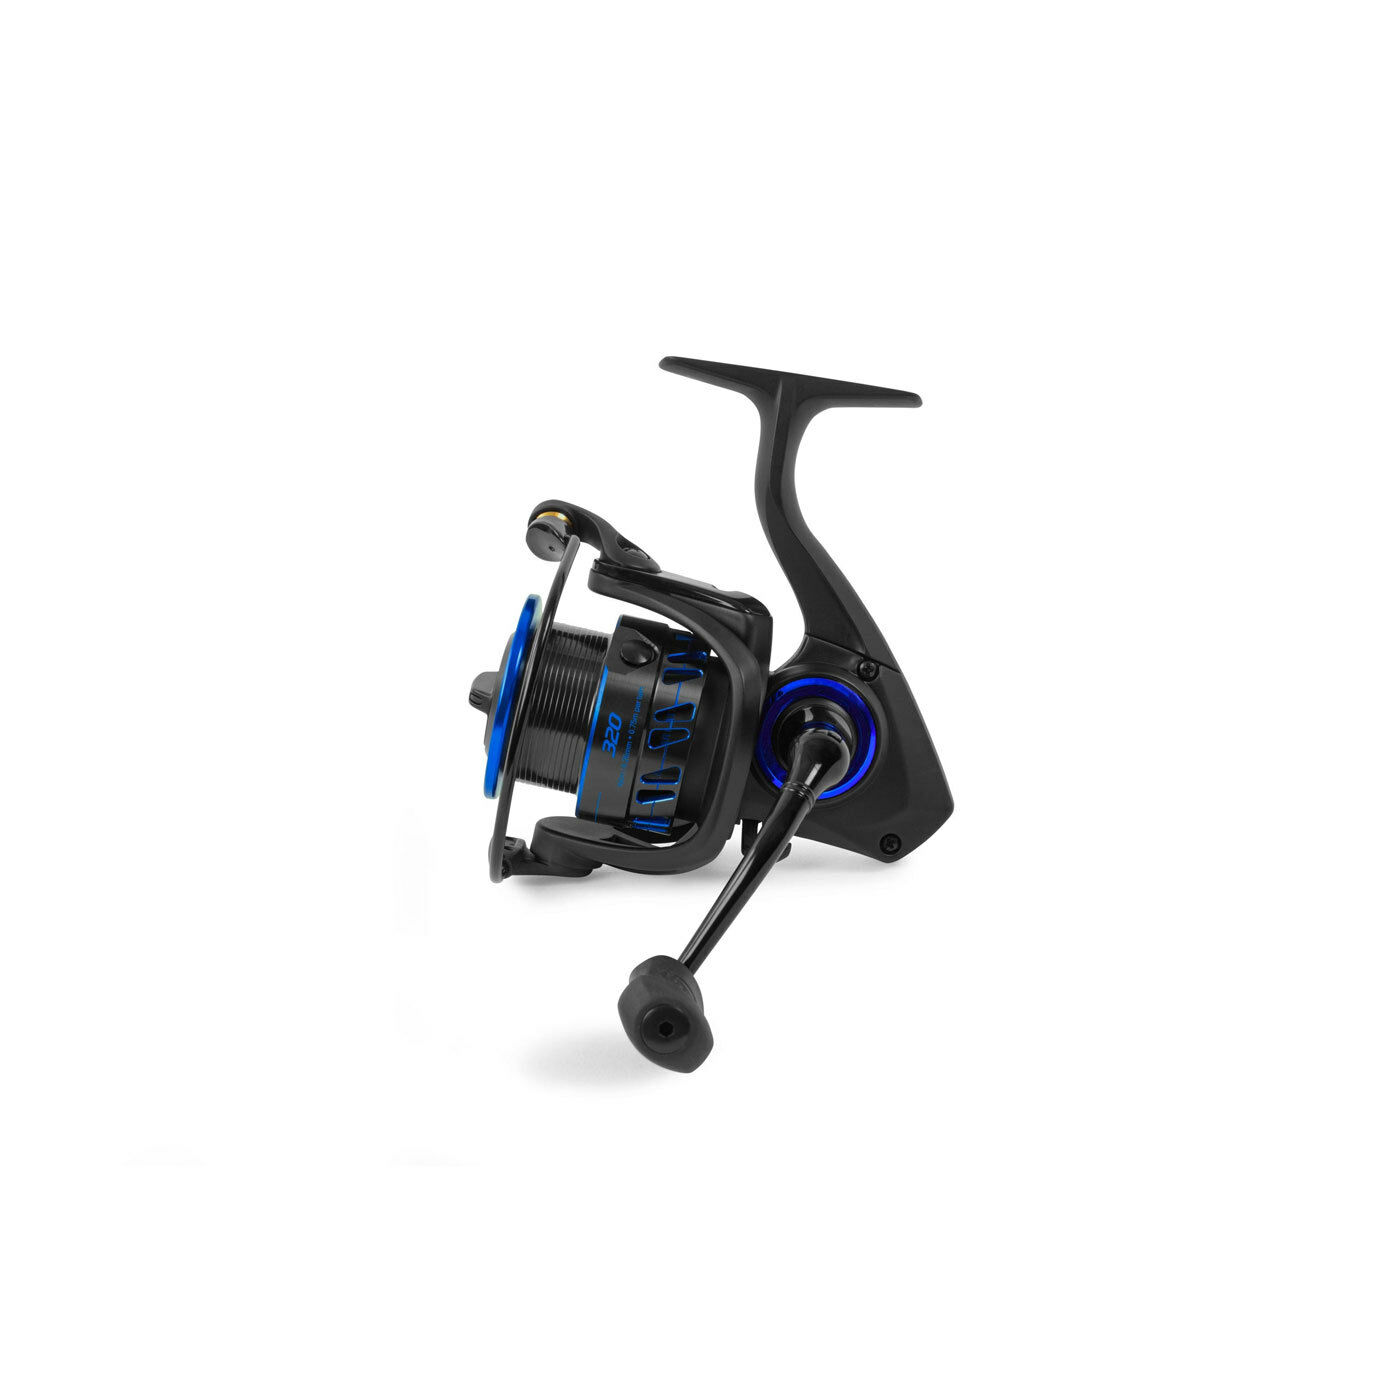 Preston Innovations Inertia 320 Reel Brand New 2019 - Free Delivery